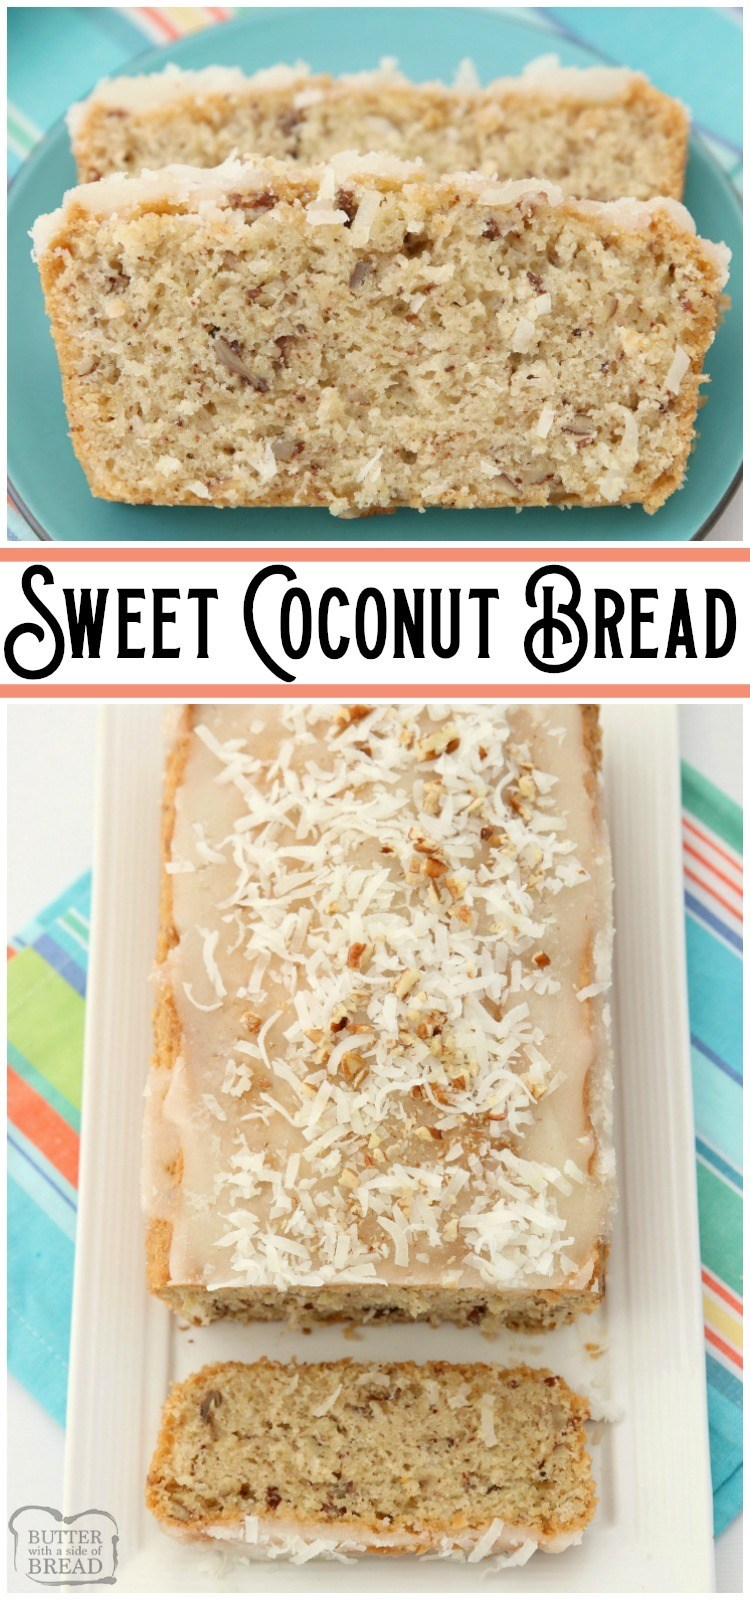 Sweet Coconut Bread is a moist sweet bread made with milk, flour, coconut and pecans. Topped with a sweet coconut glaze, flake coconut and more pecans, you won't be able to resist a slice! #coconut #bread #sweetbread #sweet #quickbread #baking #recipe from BUTTER WITH A SIDE OF BREAD